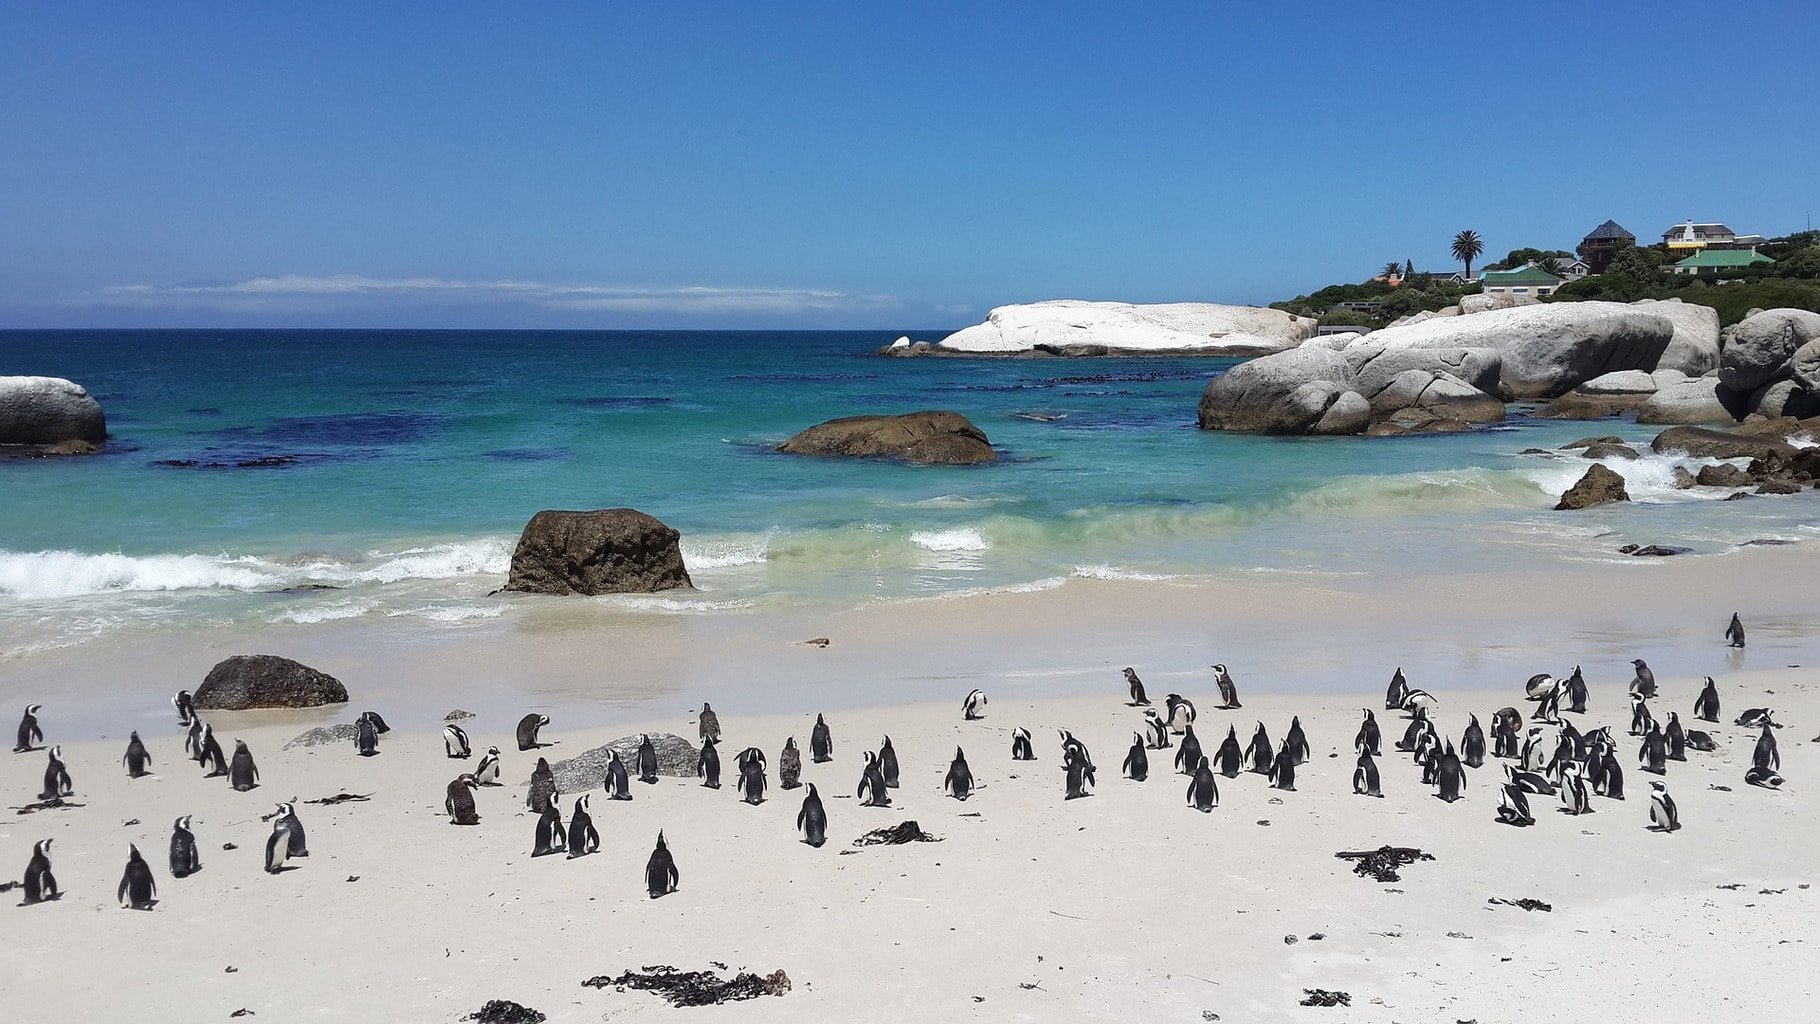 Check out the penguins at Boulders Beach